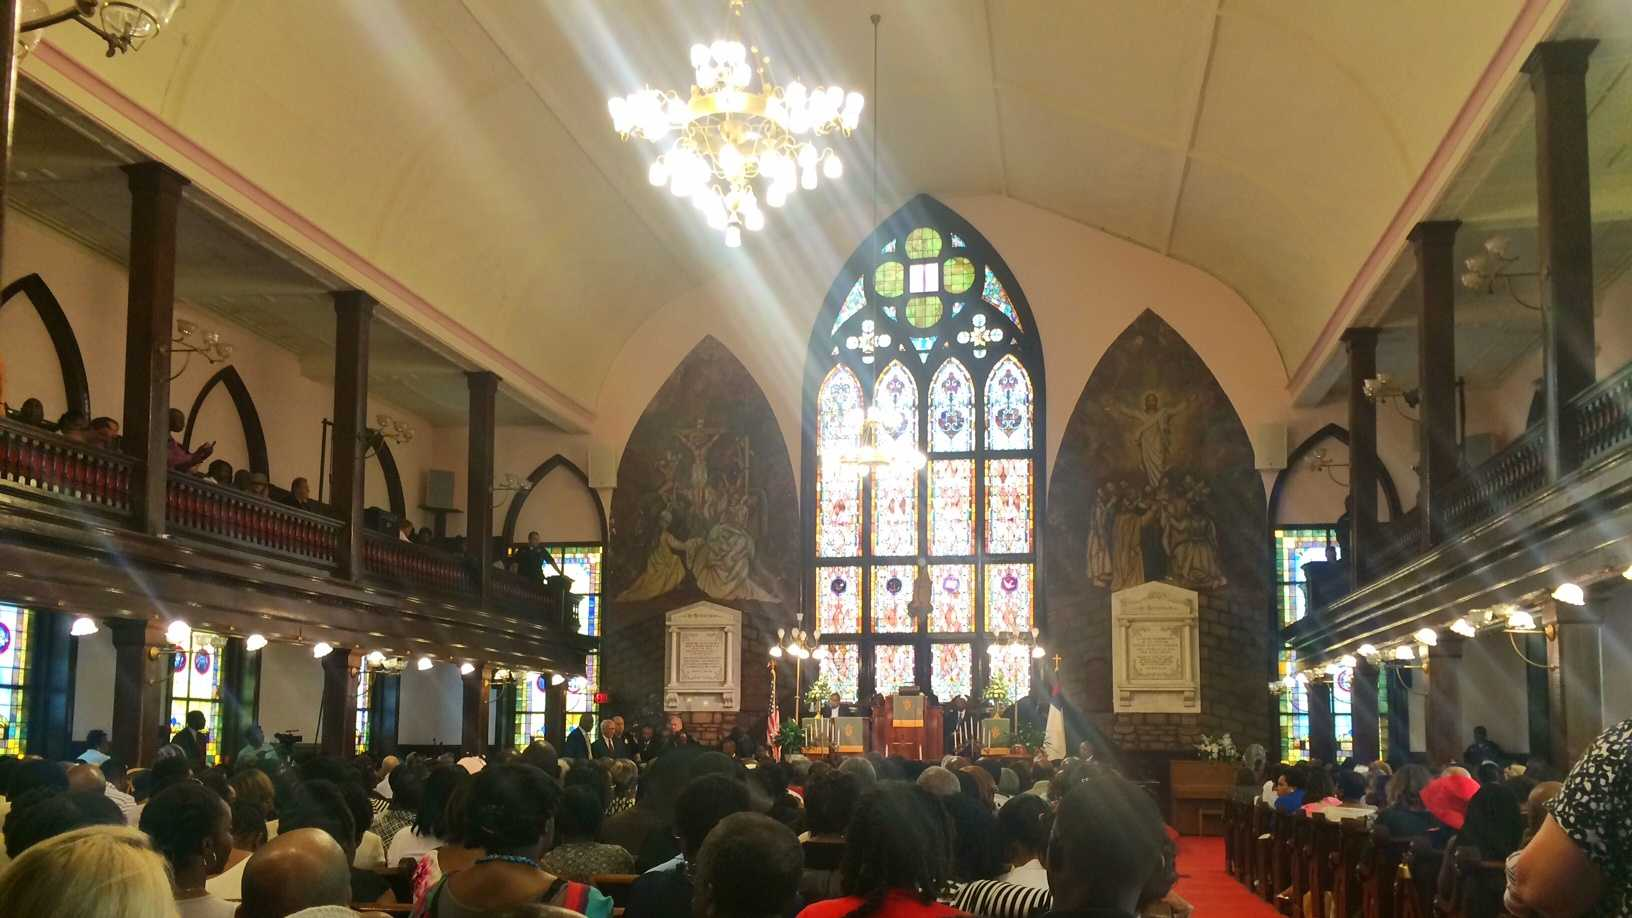 A church service started at 9 a.m. at Emanuel AME.